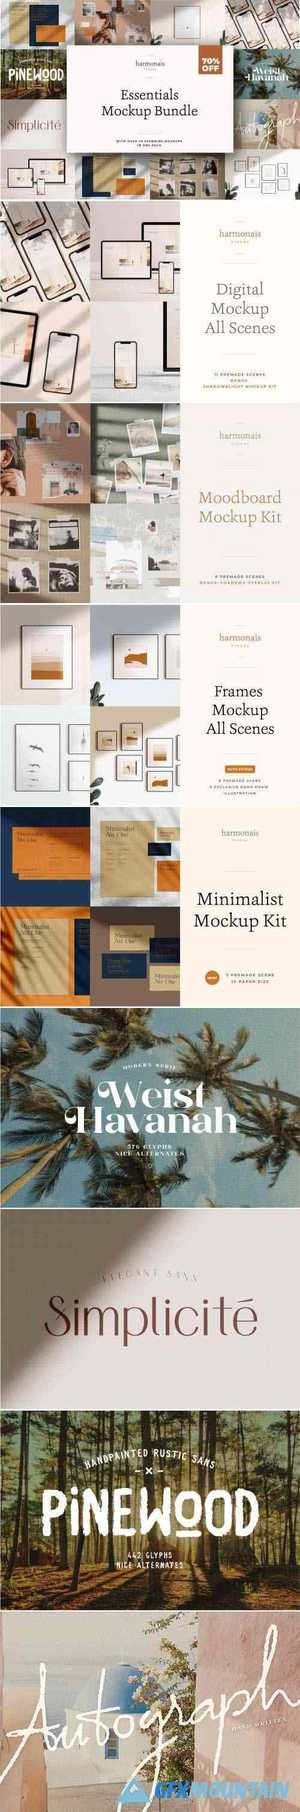 ESSENTIALS MOCKUP BUNDLE - 4355910